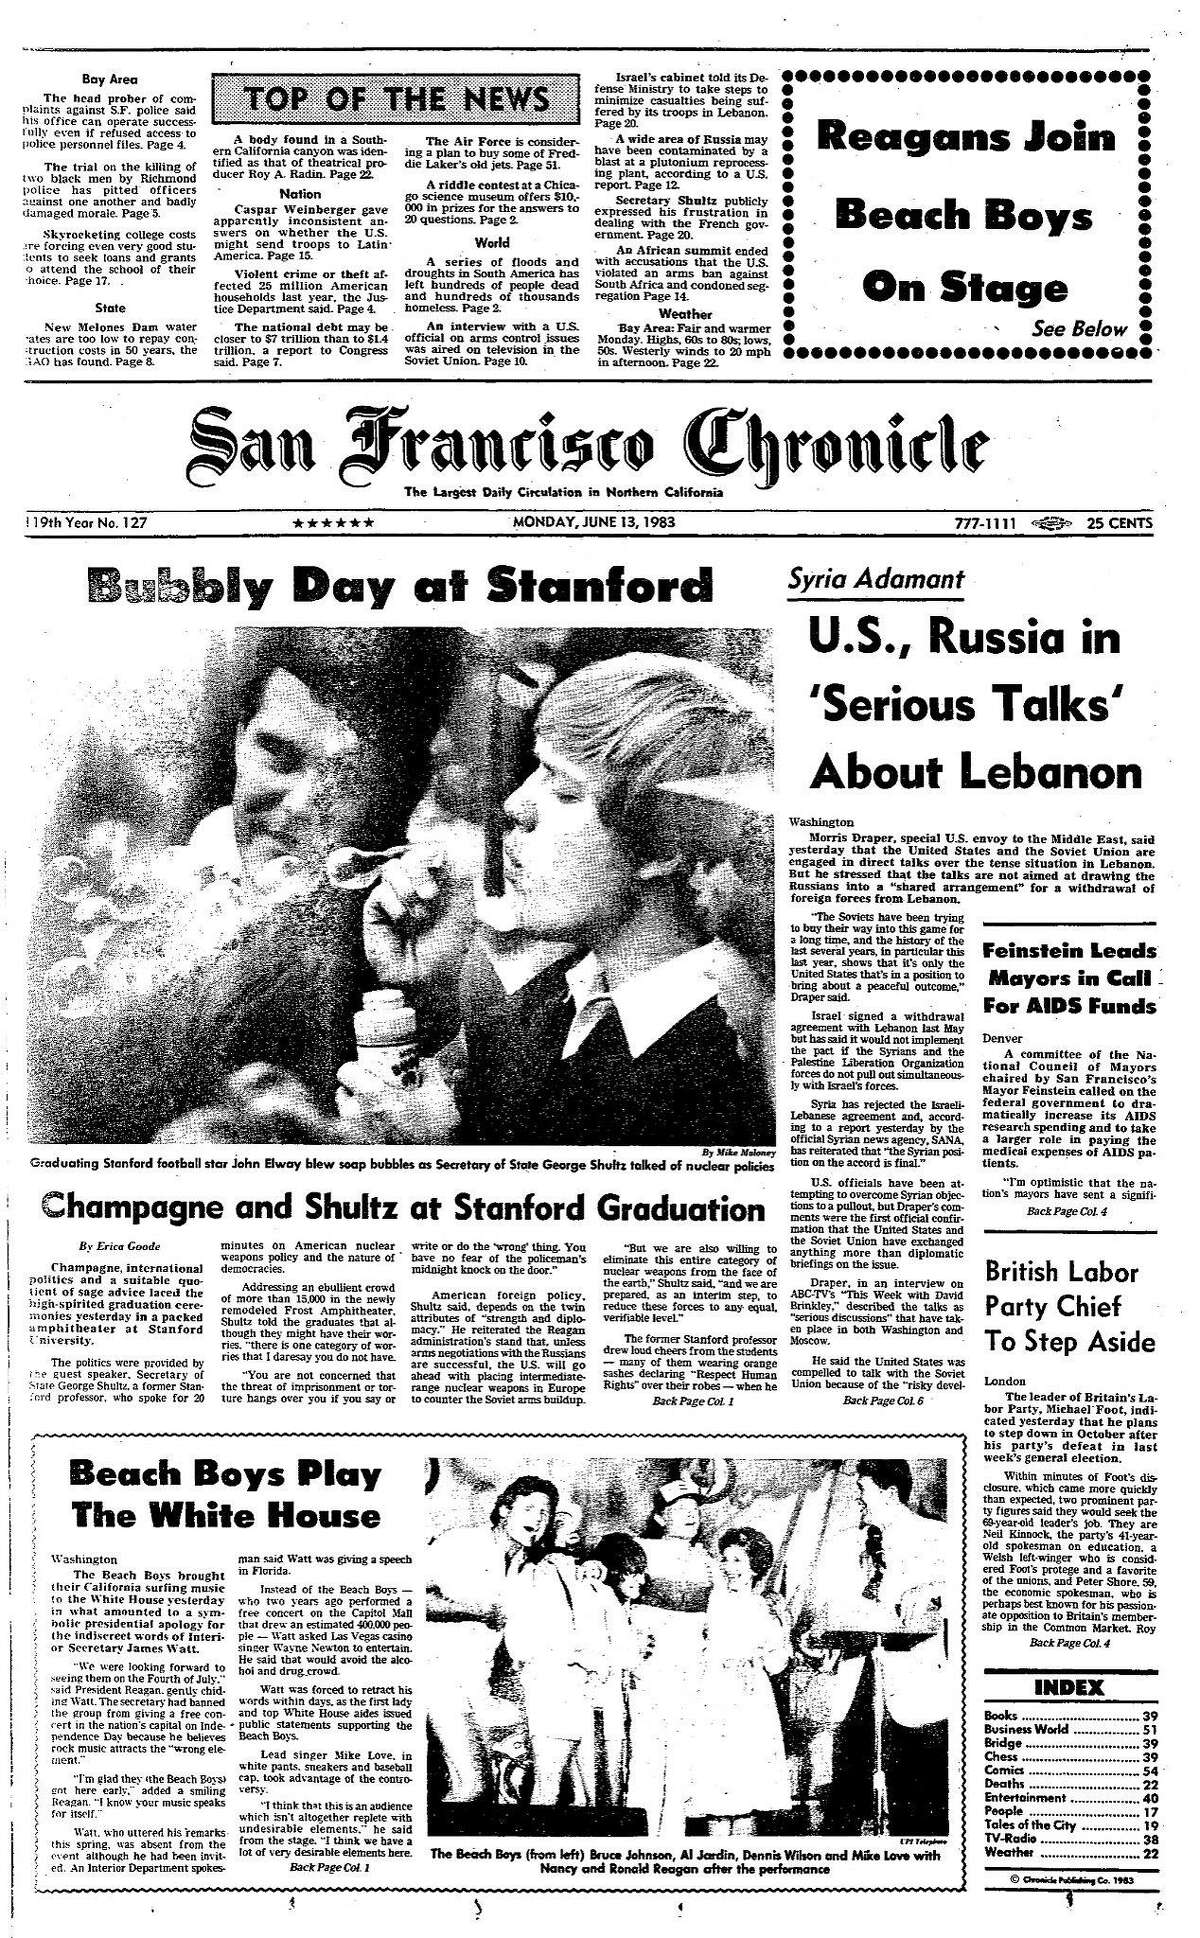 Historic Chronicle Front Page June 13, 1983 John Elaway blows bubble at his Stanford graduation, and Beach Boys entertain Reagan at White House Chron365, Chroncover